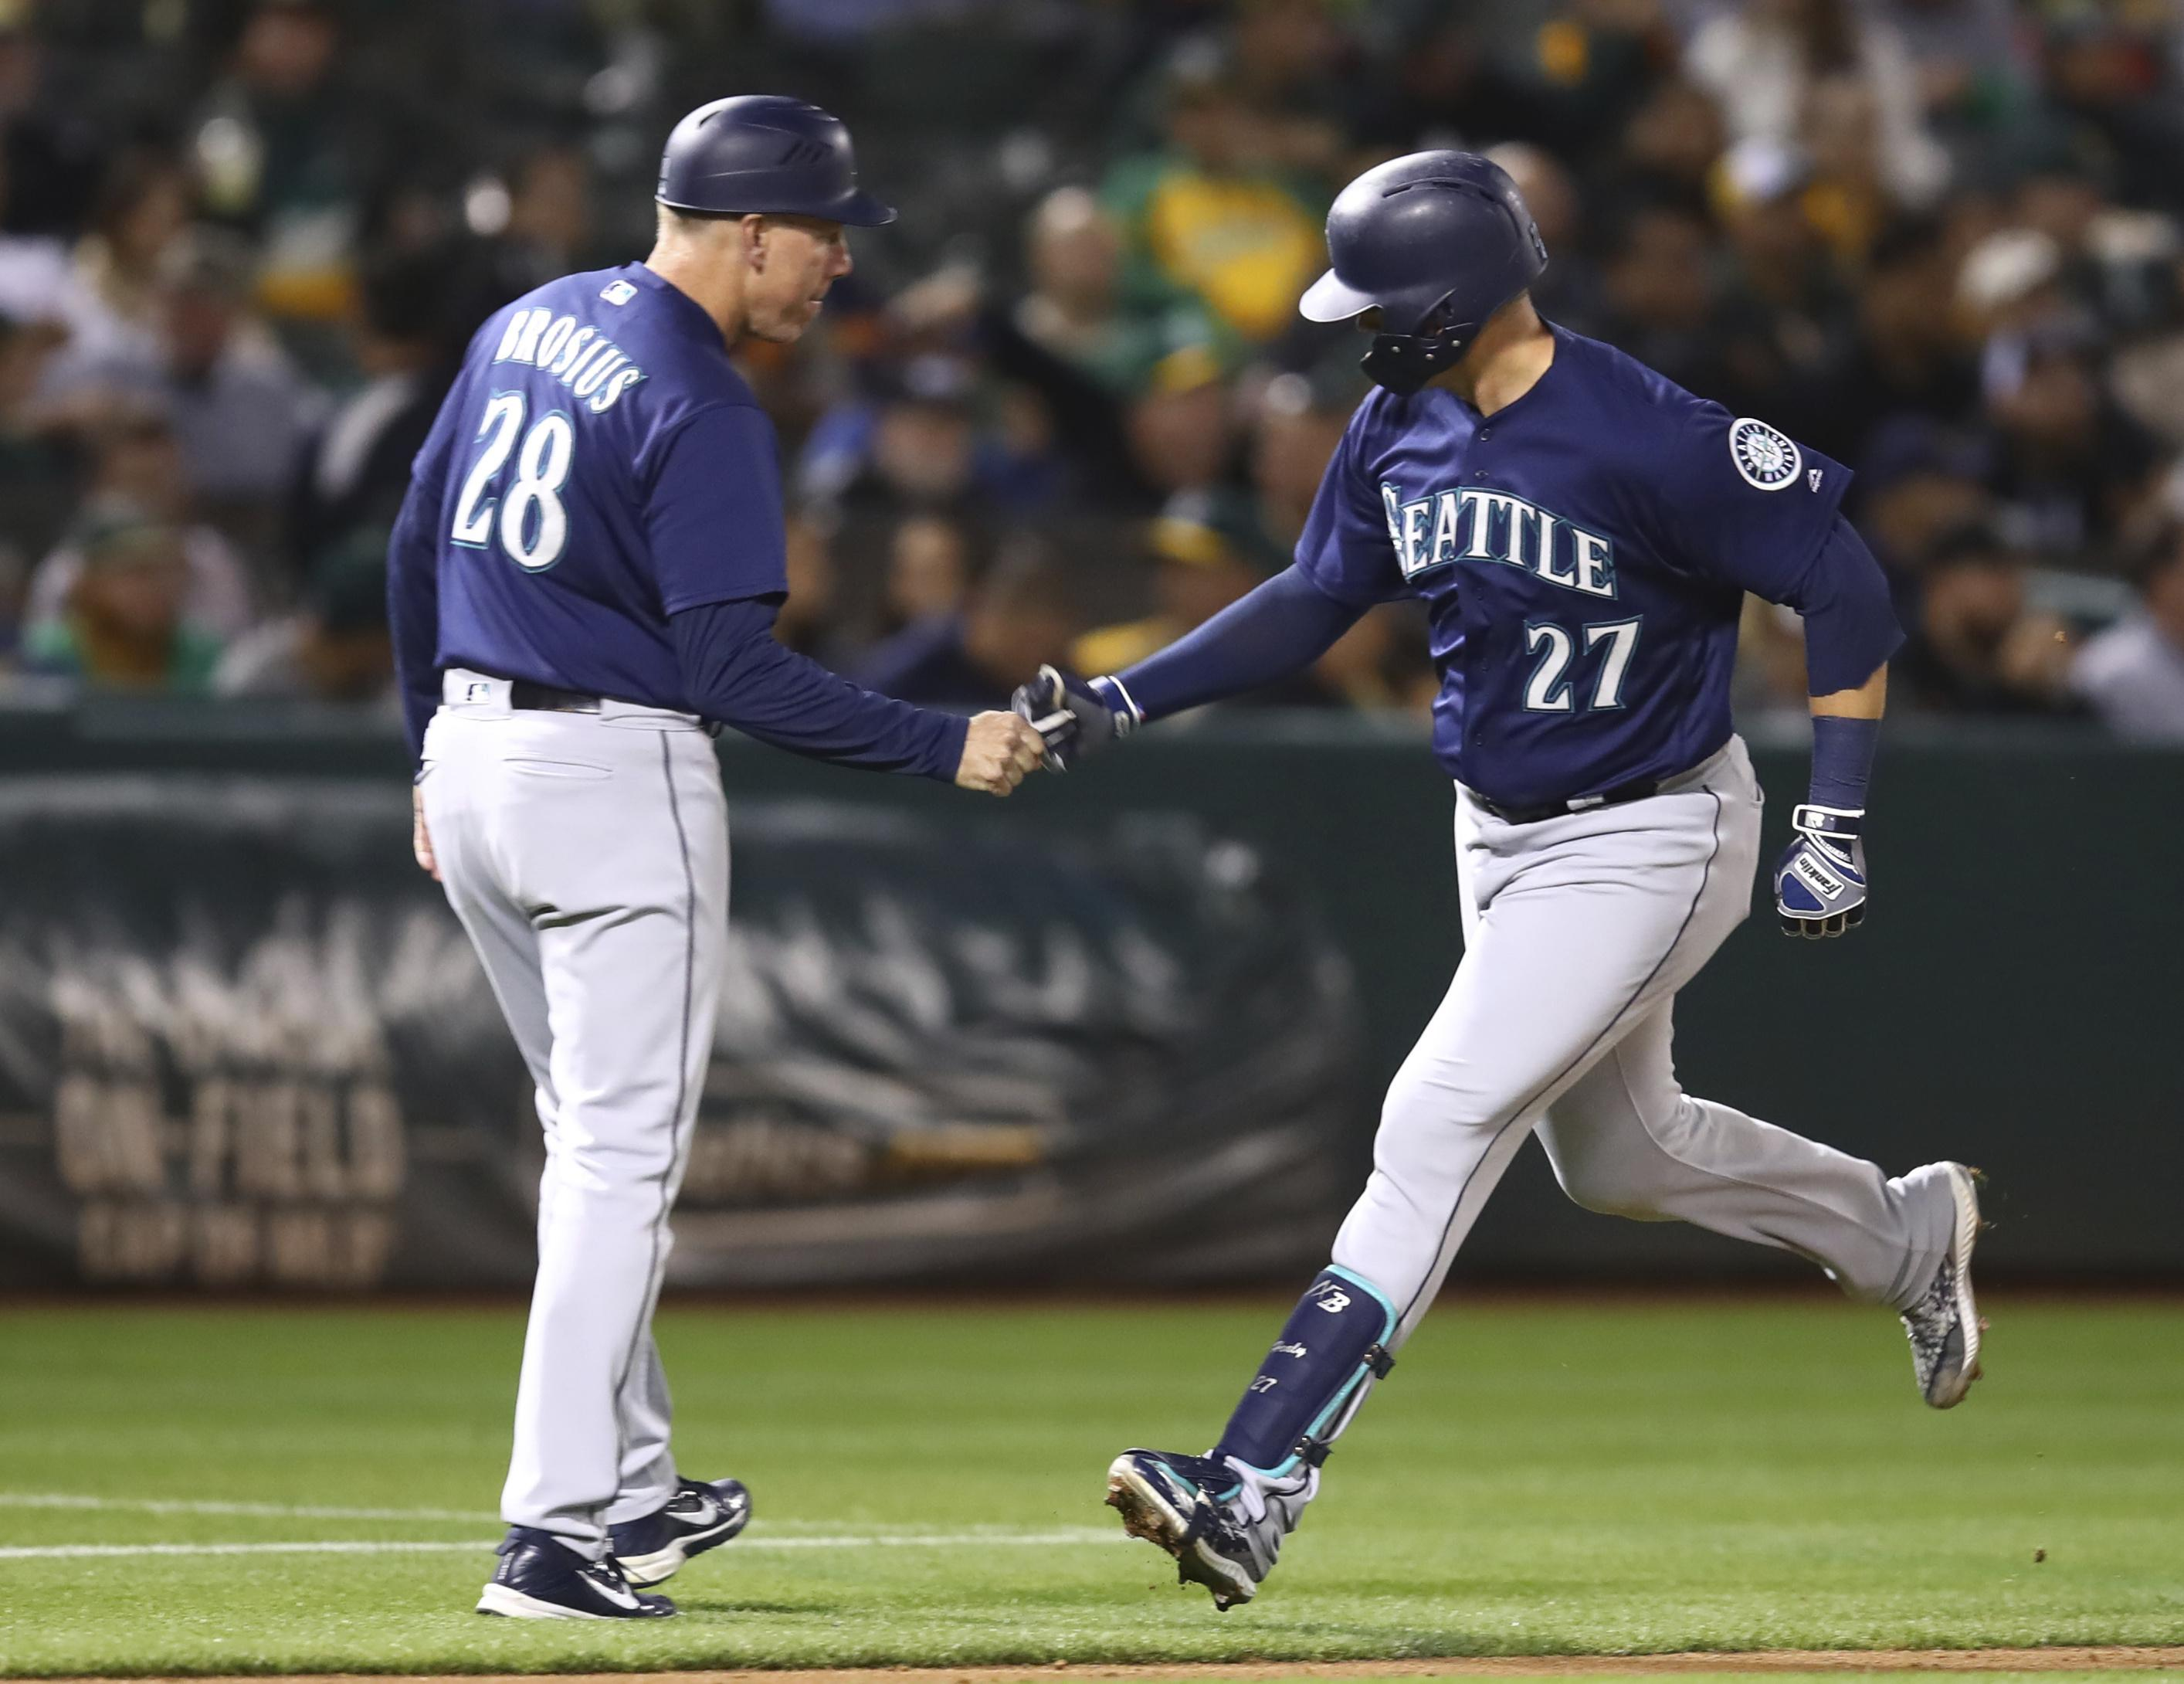 cb5ed6f62 Seattle s Ryon Healy is congratulated by third-base coach Scott Brosius  after hitting a two